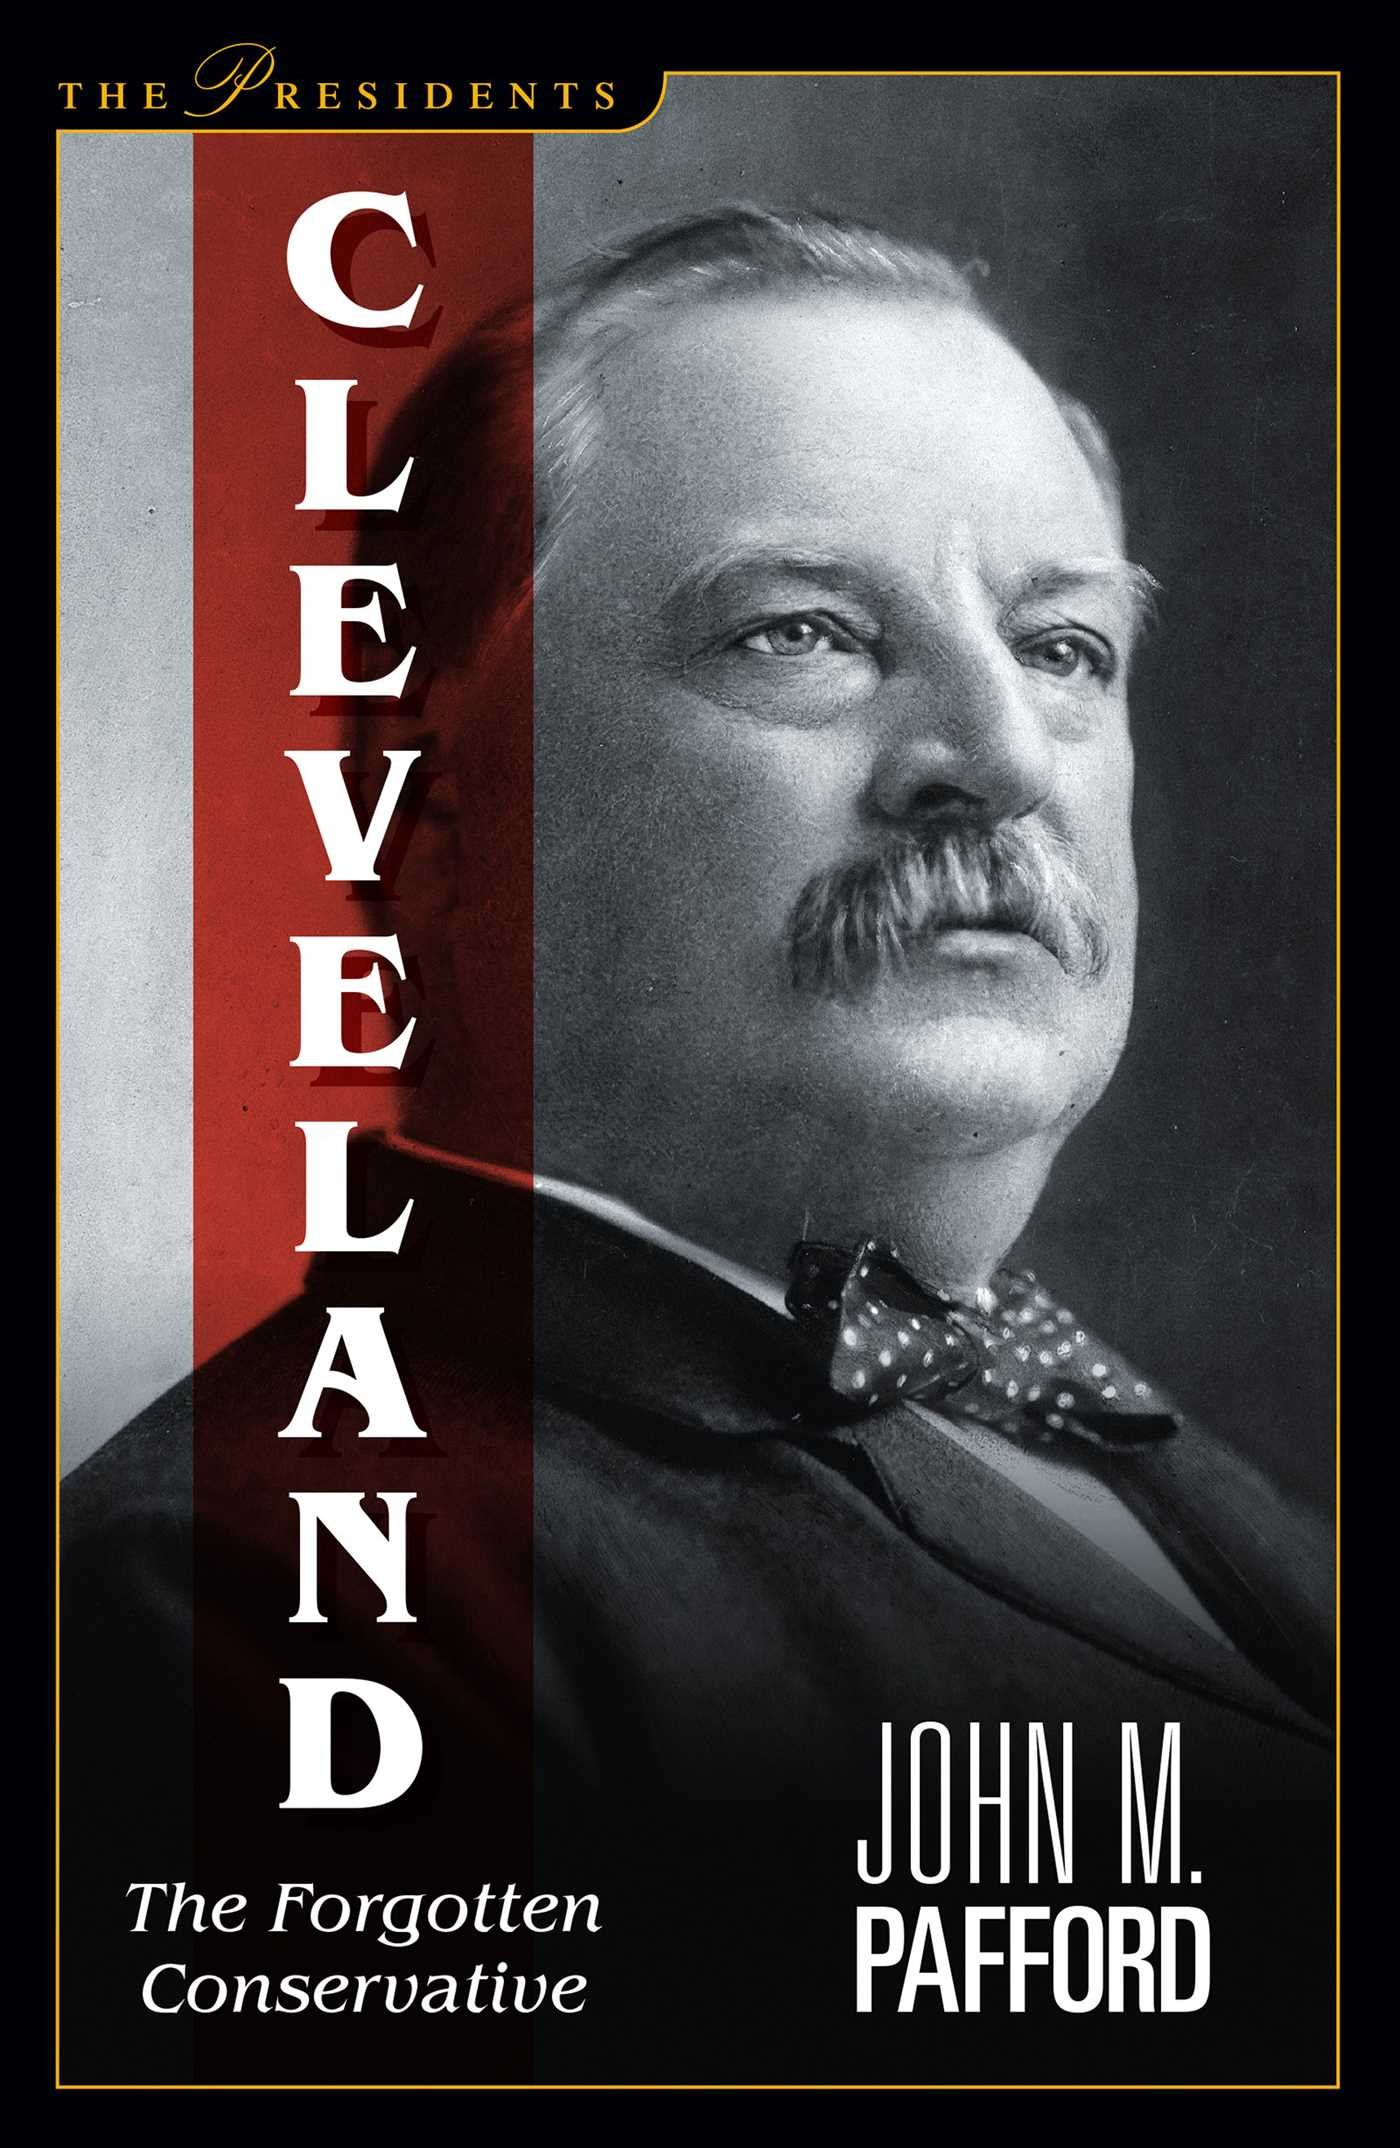 Cleveland: The Forgotten Conservative (The Presidents) PDF